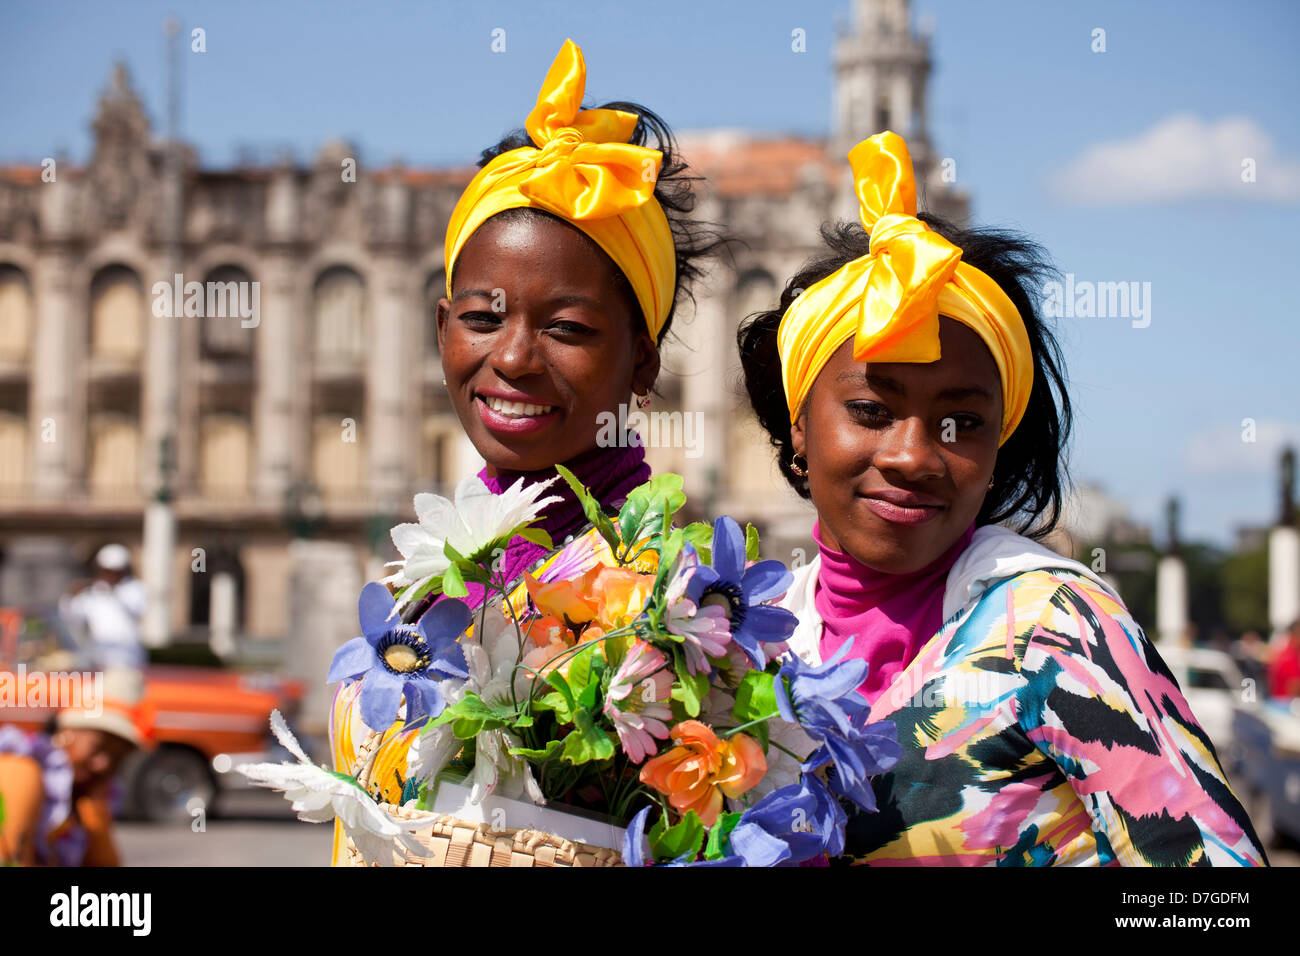 young woman with headscarf and colourful flowers, Havana, Cuba, Caribbean - Stock Image